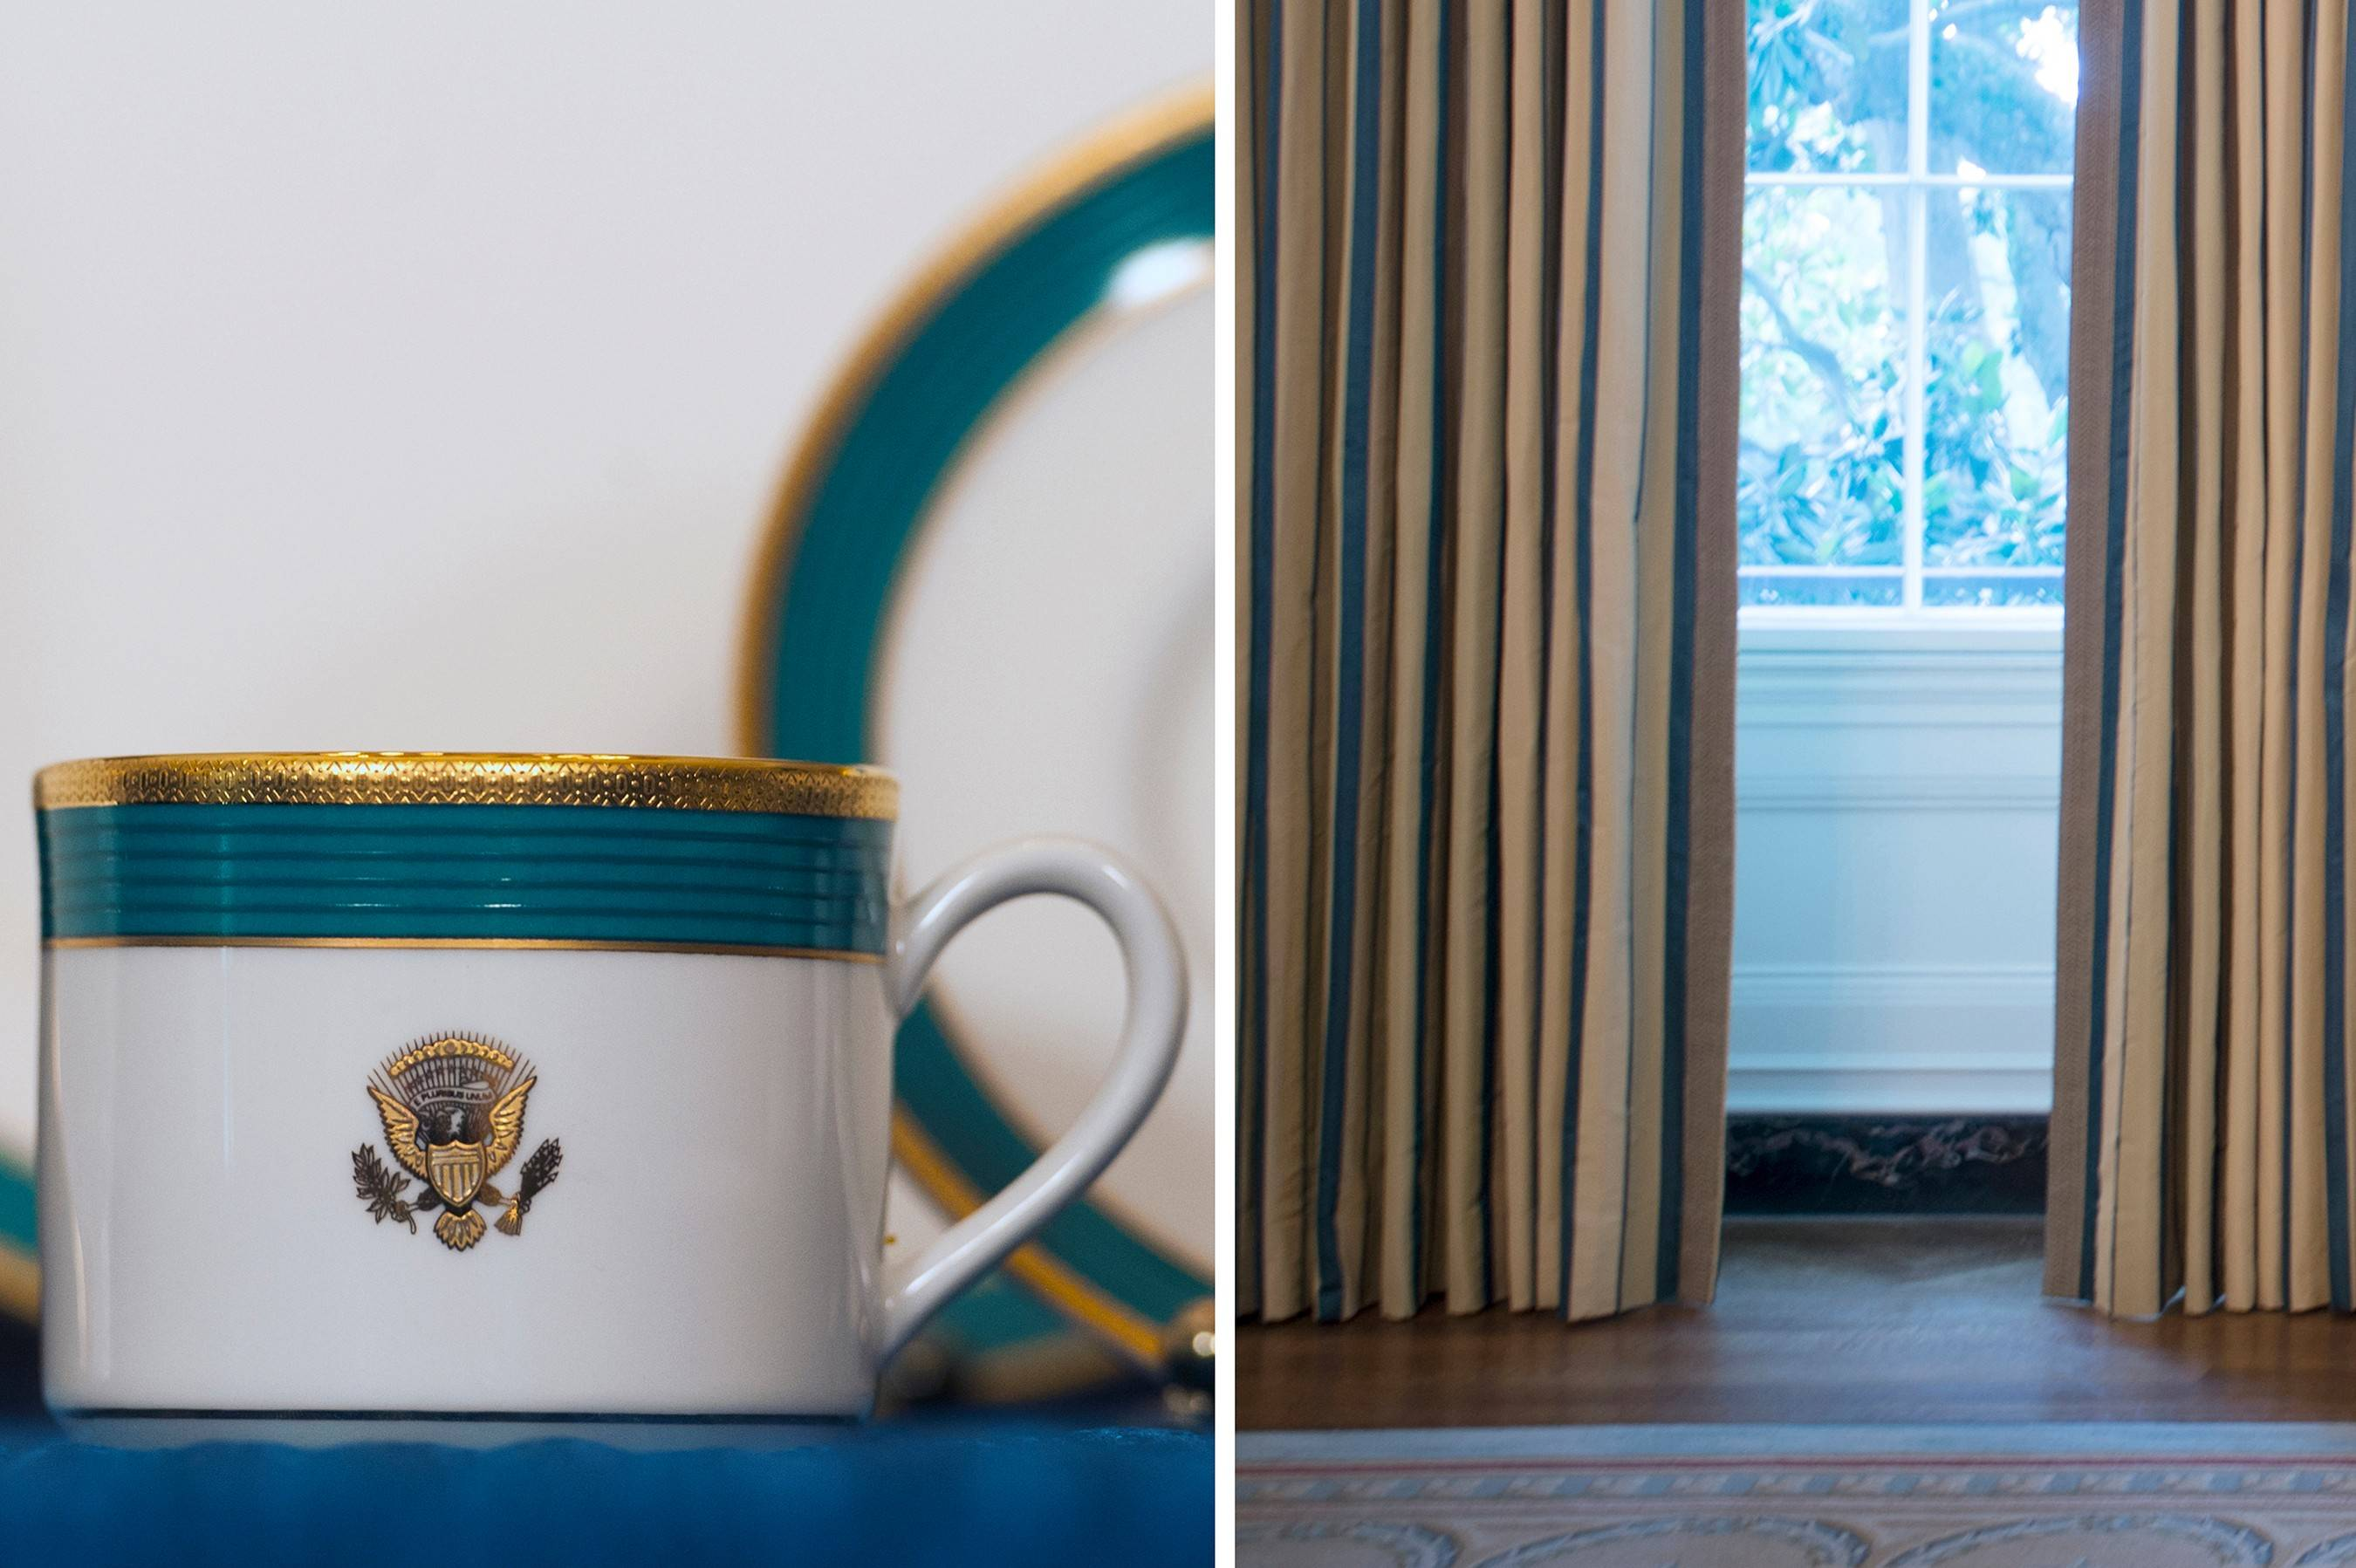 "The Obama state china service unveiled in April, left, shows its ""Kailua Blue"" trim, a color inspired by the waters off Hawaii, the president's home state. At right, the new State Dining Room striped silk curtains unveiled as part of the room's makeover have a peacock blue stripe that will coordinate well with the china."